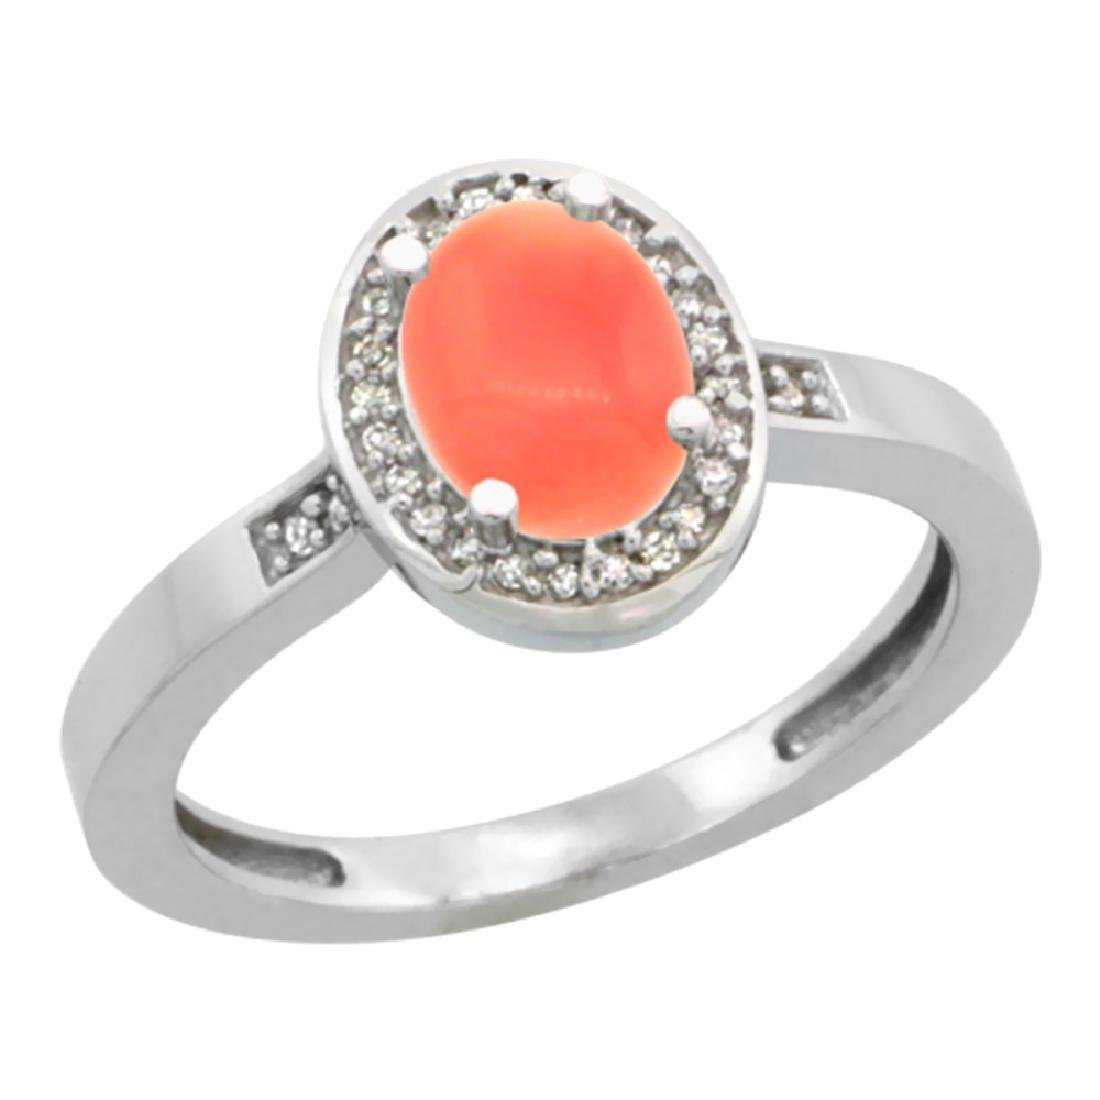 Natural 0.83 ctw Coral & Diamond Engagement Ring 14K